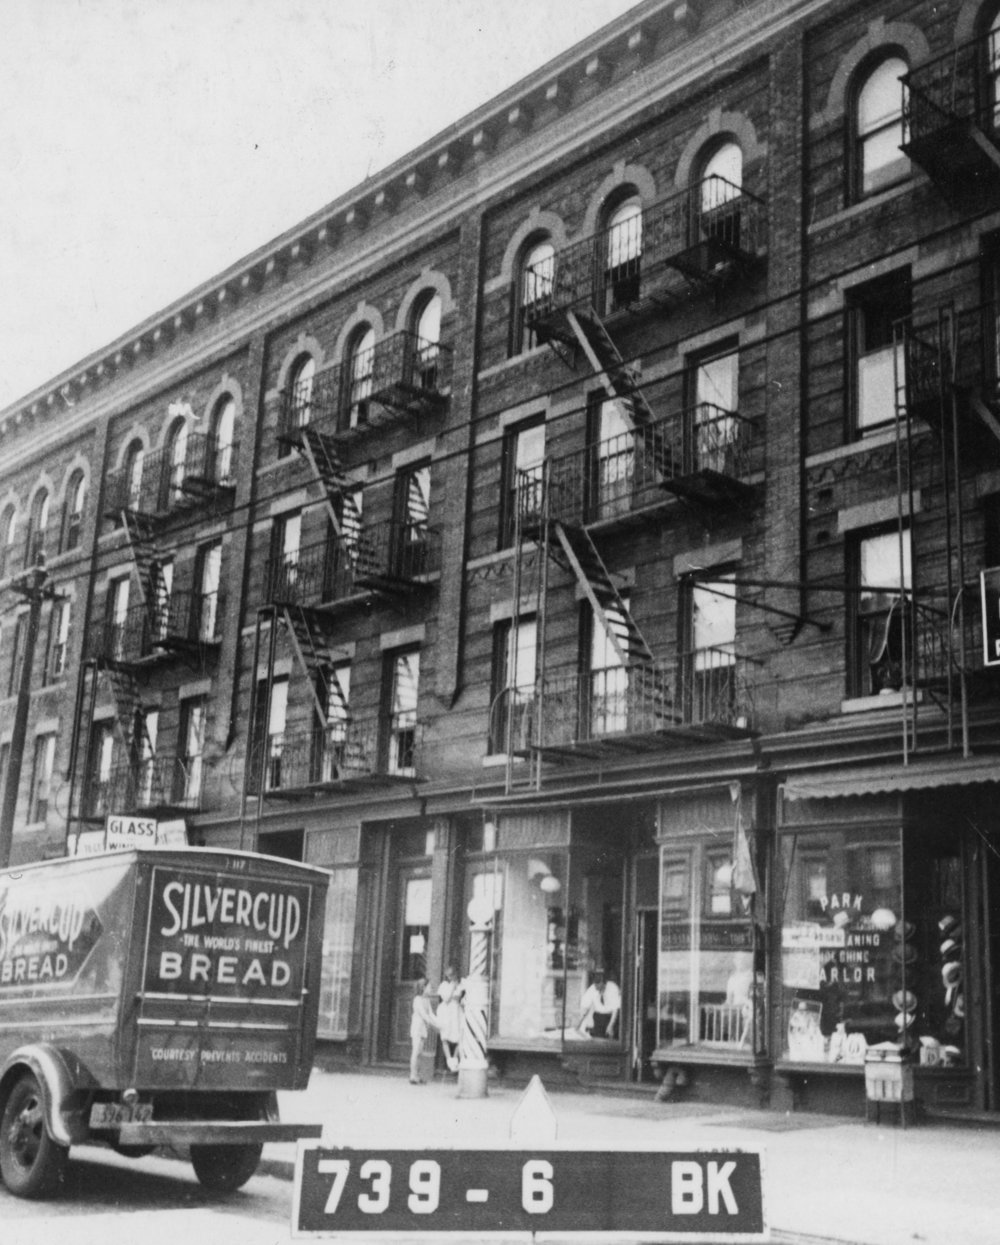 4409 5th Ave, Brooklyn, NY, circa 1940. NYC Municipal Archives.